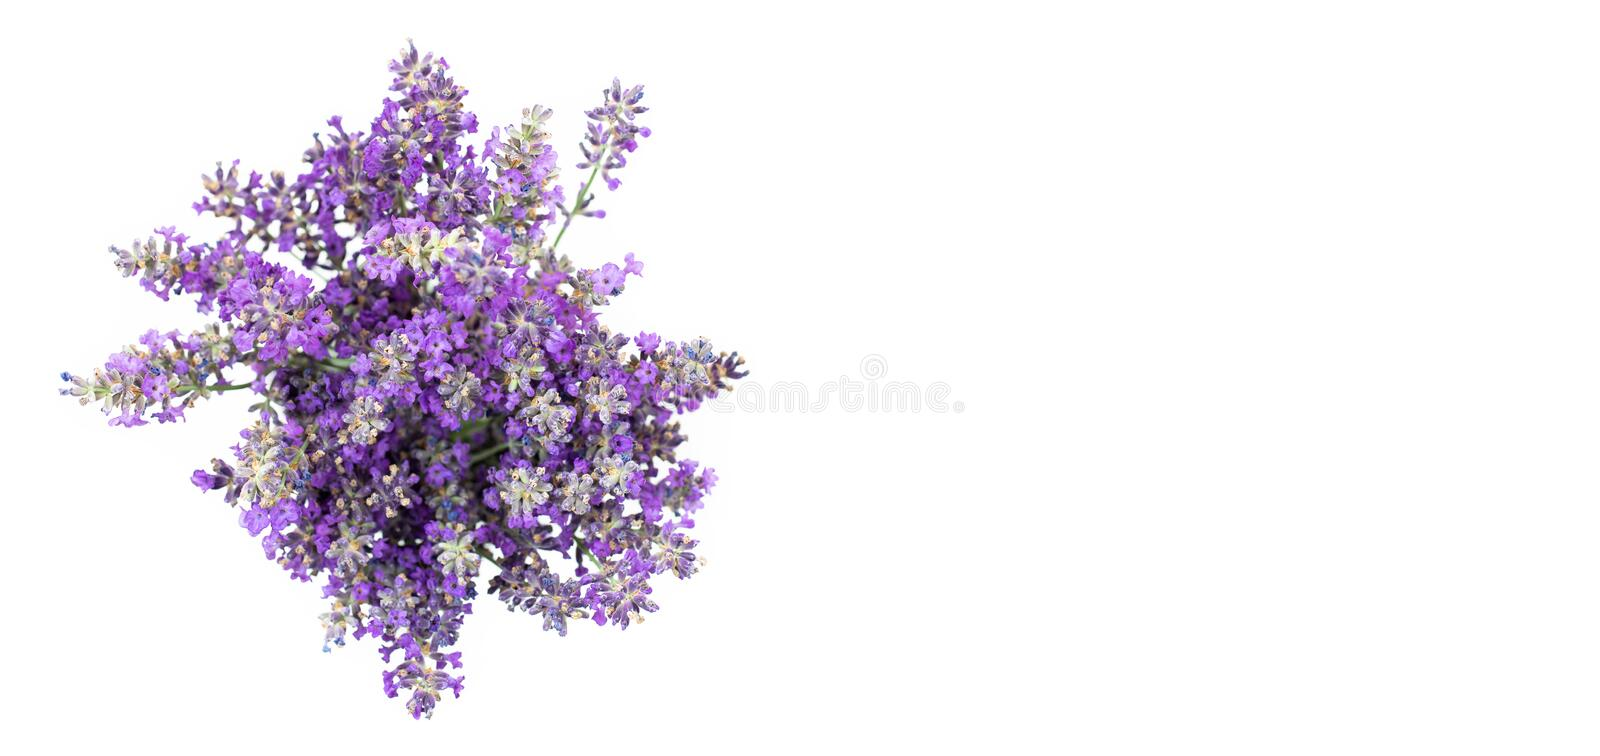 Bouquet of lavender on a white isolated background. Medicinal plants. View from above stock photo